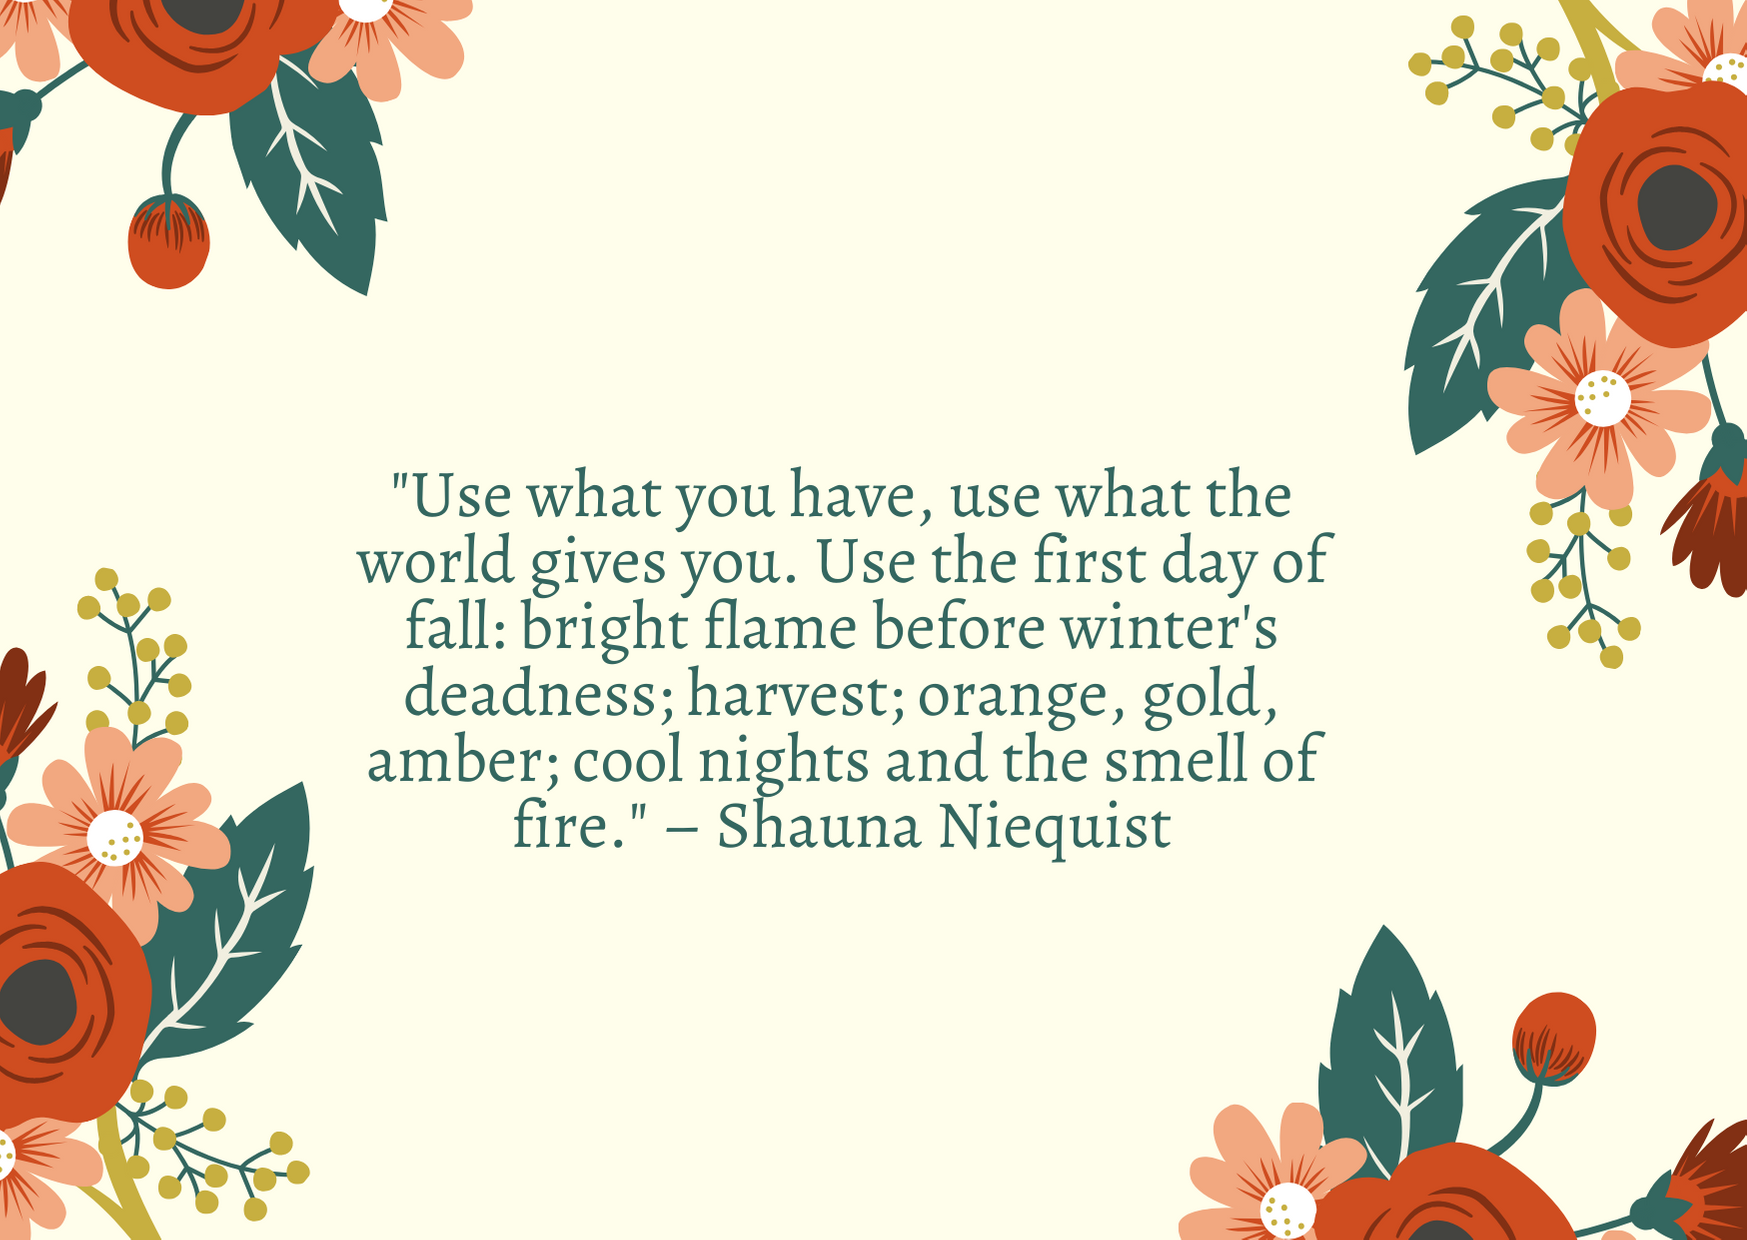 """Use what you have, use what the world gives you. Use the first day of fall: bright flame before winter's deadness; harvest; orange, gold, amber; cool nights and the smell of fire."" – Shauna Niequist"